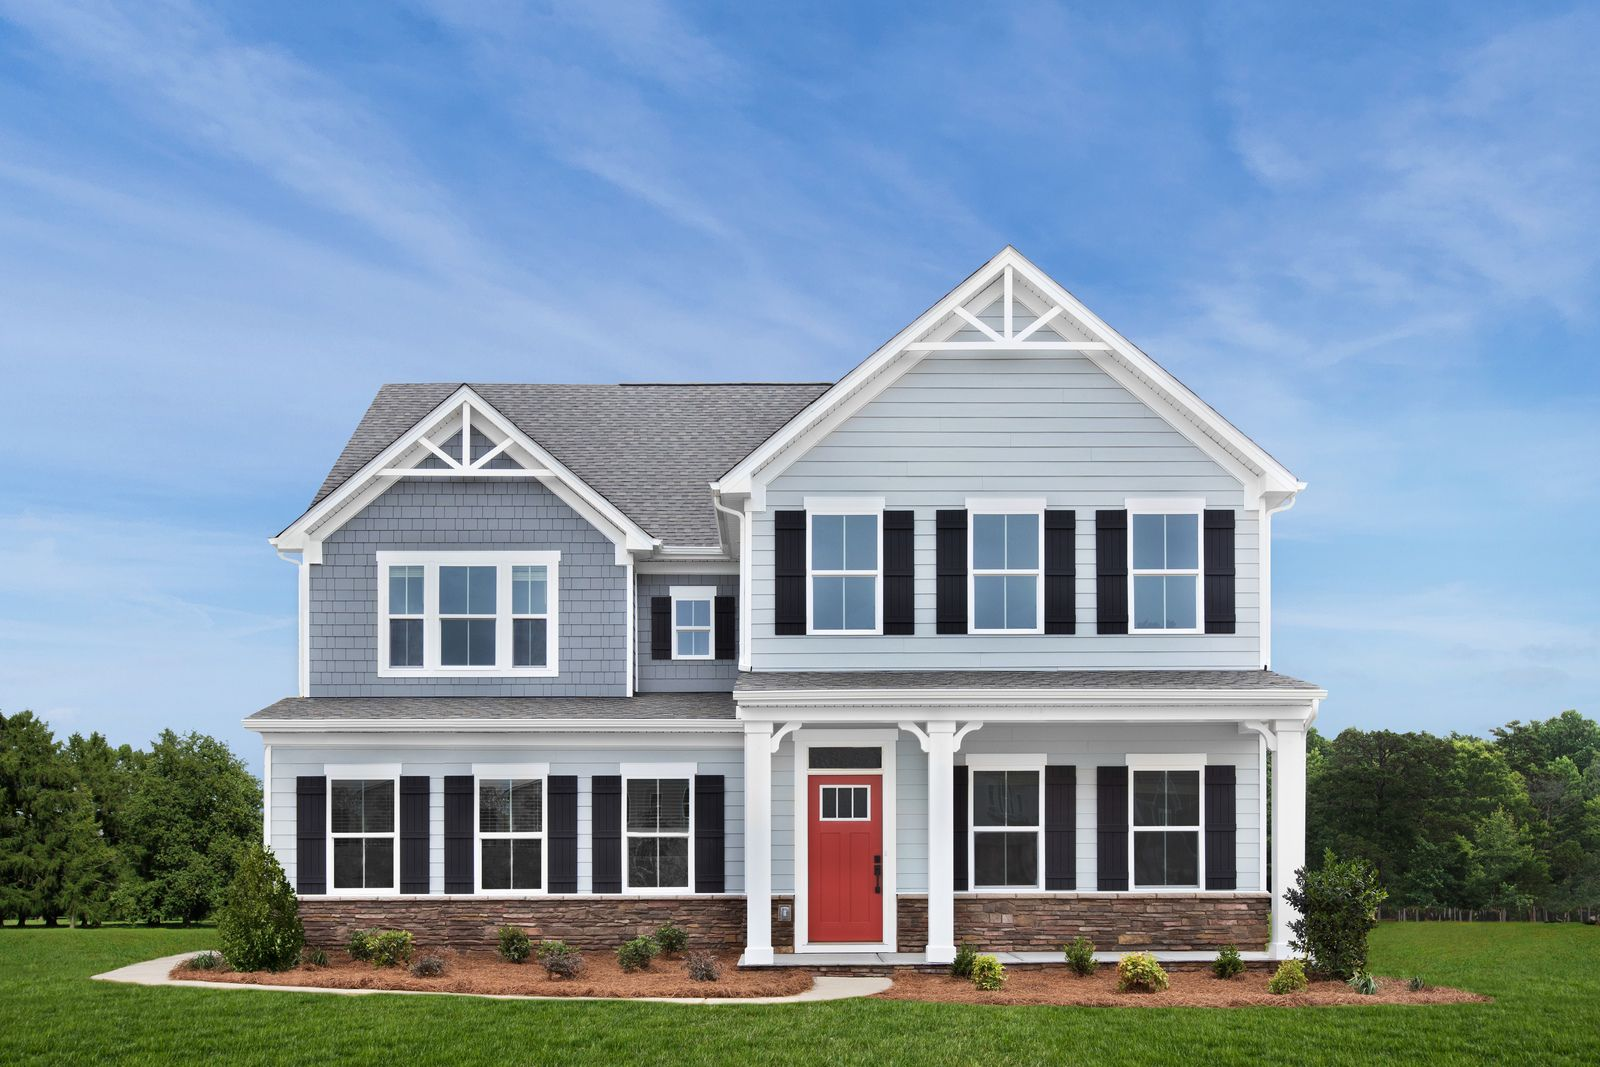 Forest Ridge in West Murfreesboro - From the Mid $400s:A peaceful, wooded community with large homesites, spacious floorplans, included side entry garages, & 3-car garage options.Schedule your virtual or in-person visit today!